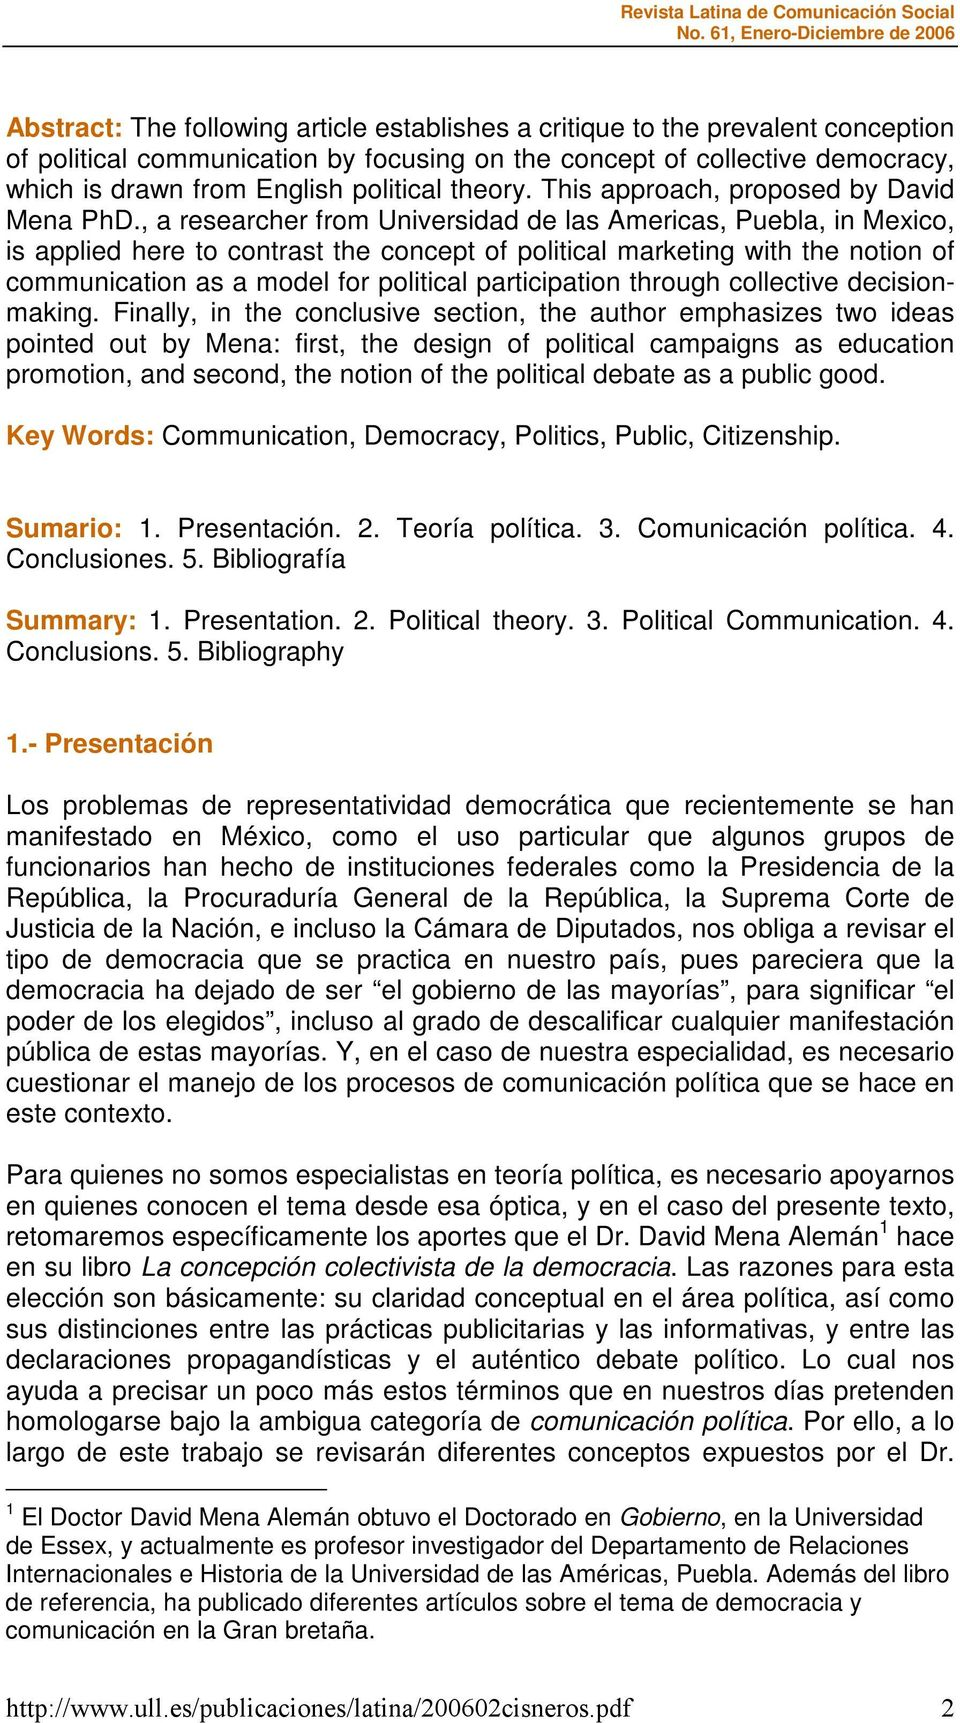 , a researcher from Universidad de las Americas, Puebla, in Mexico, is applied here to contrast the concept of political marketing with the notion of communication as a model for political